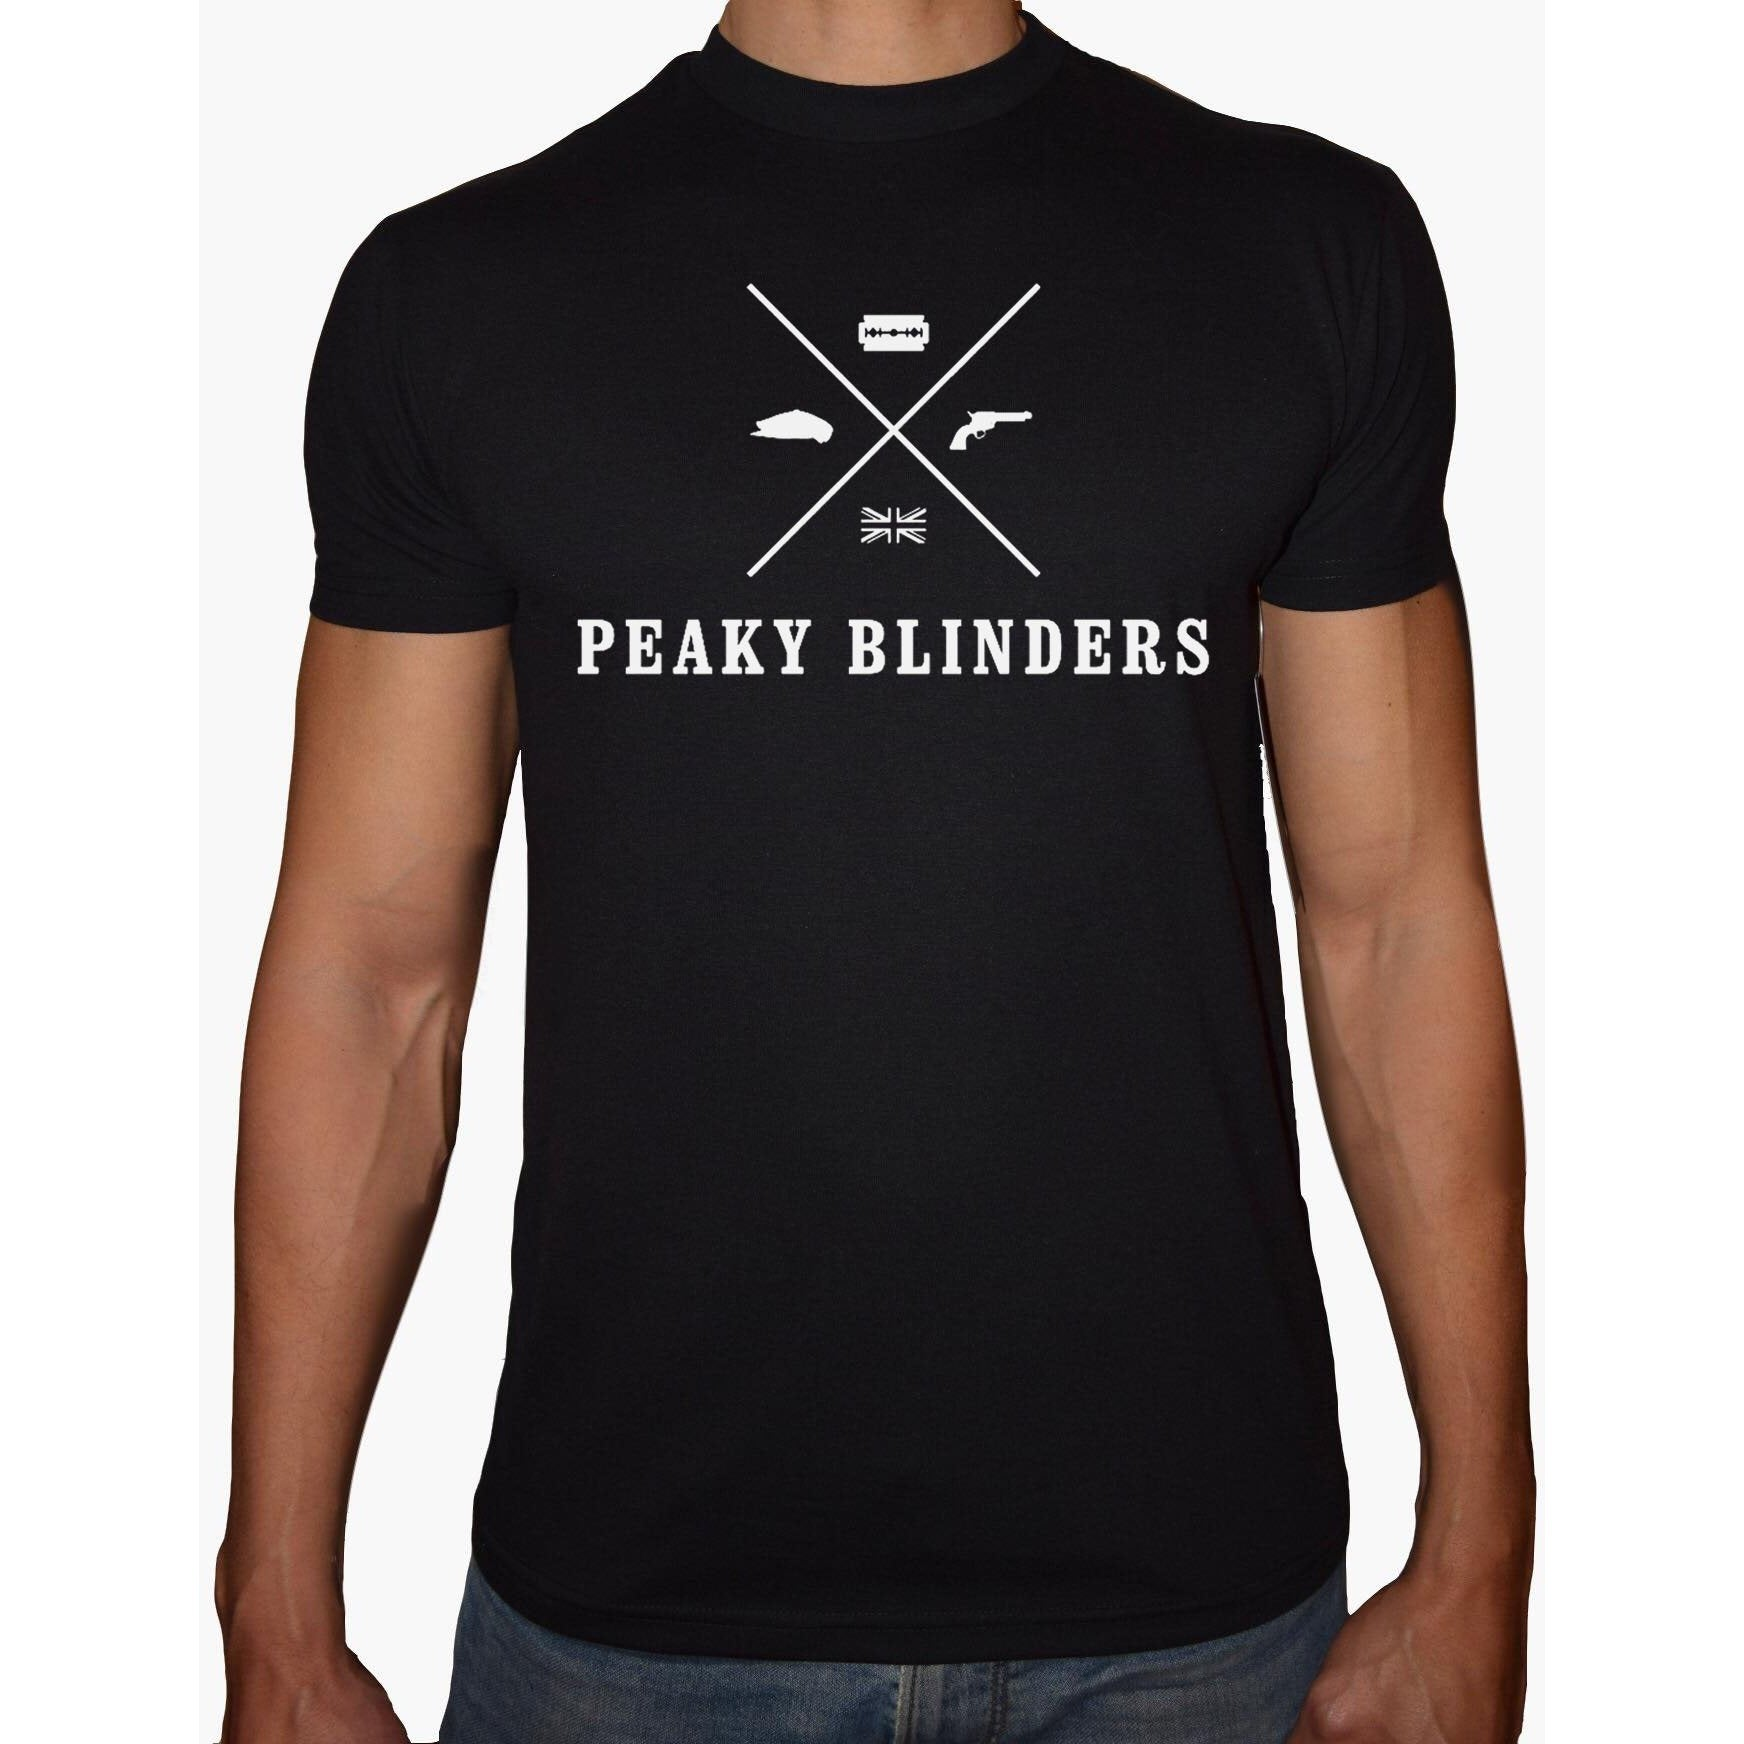 Phoenix BLACK Round Neck Printed T-Shirt Men (Peaky blinders)